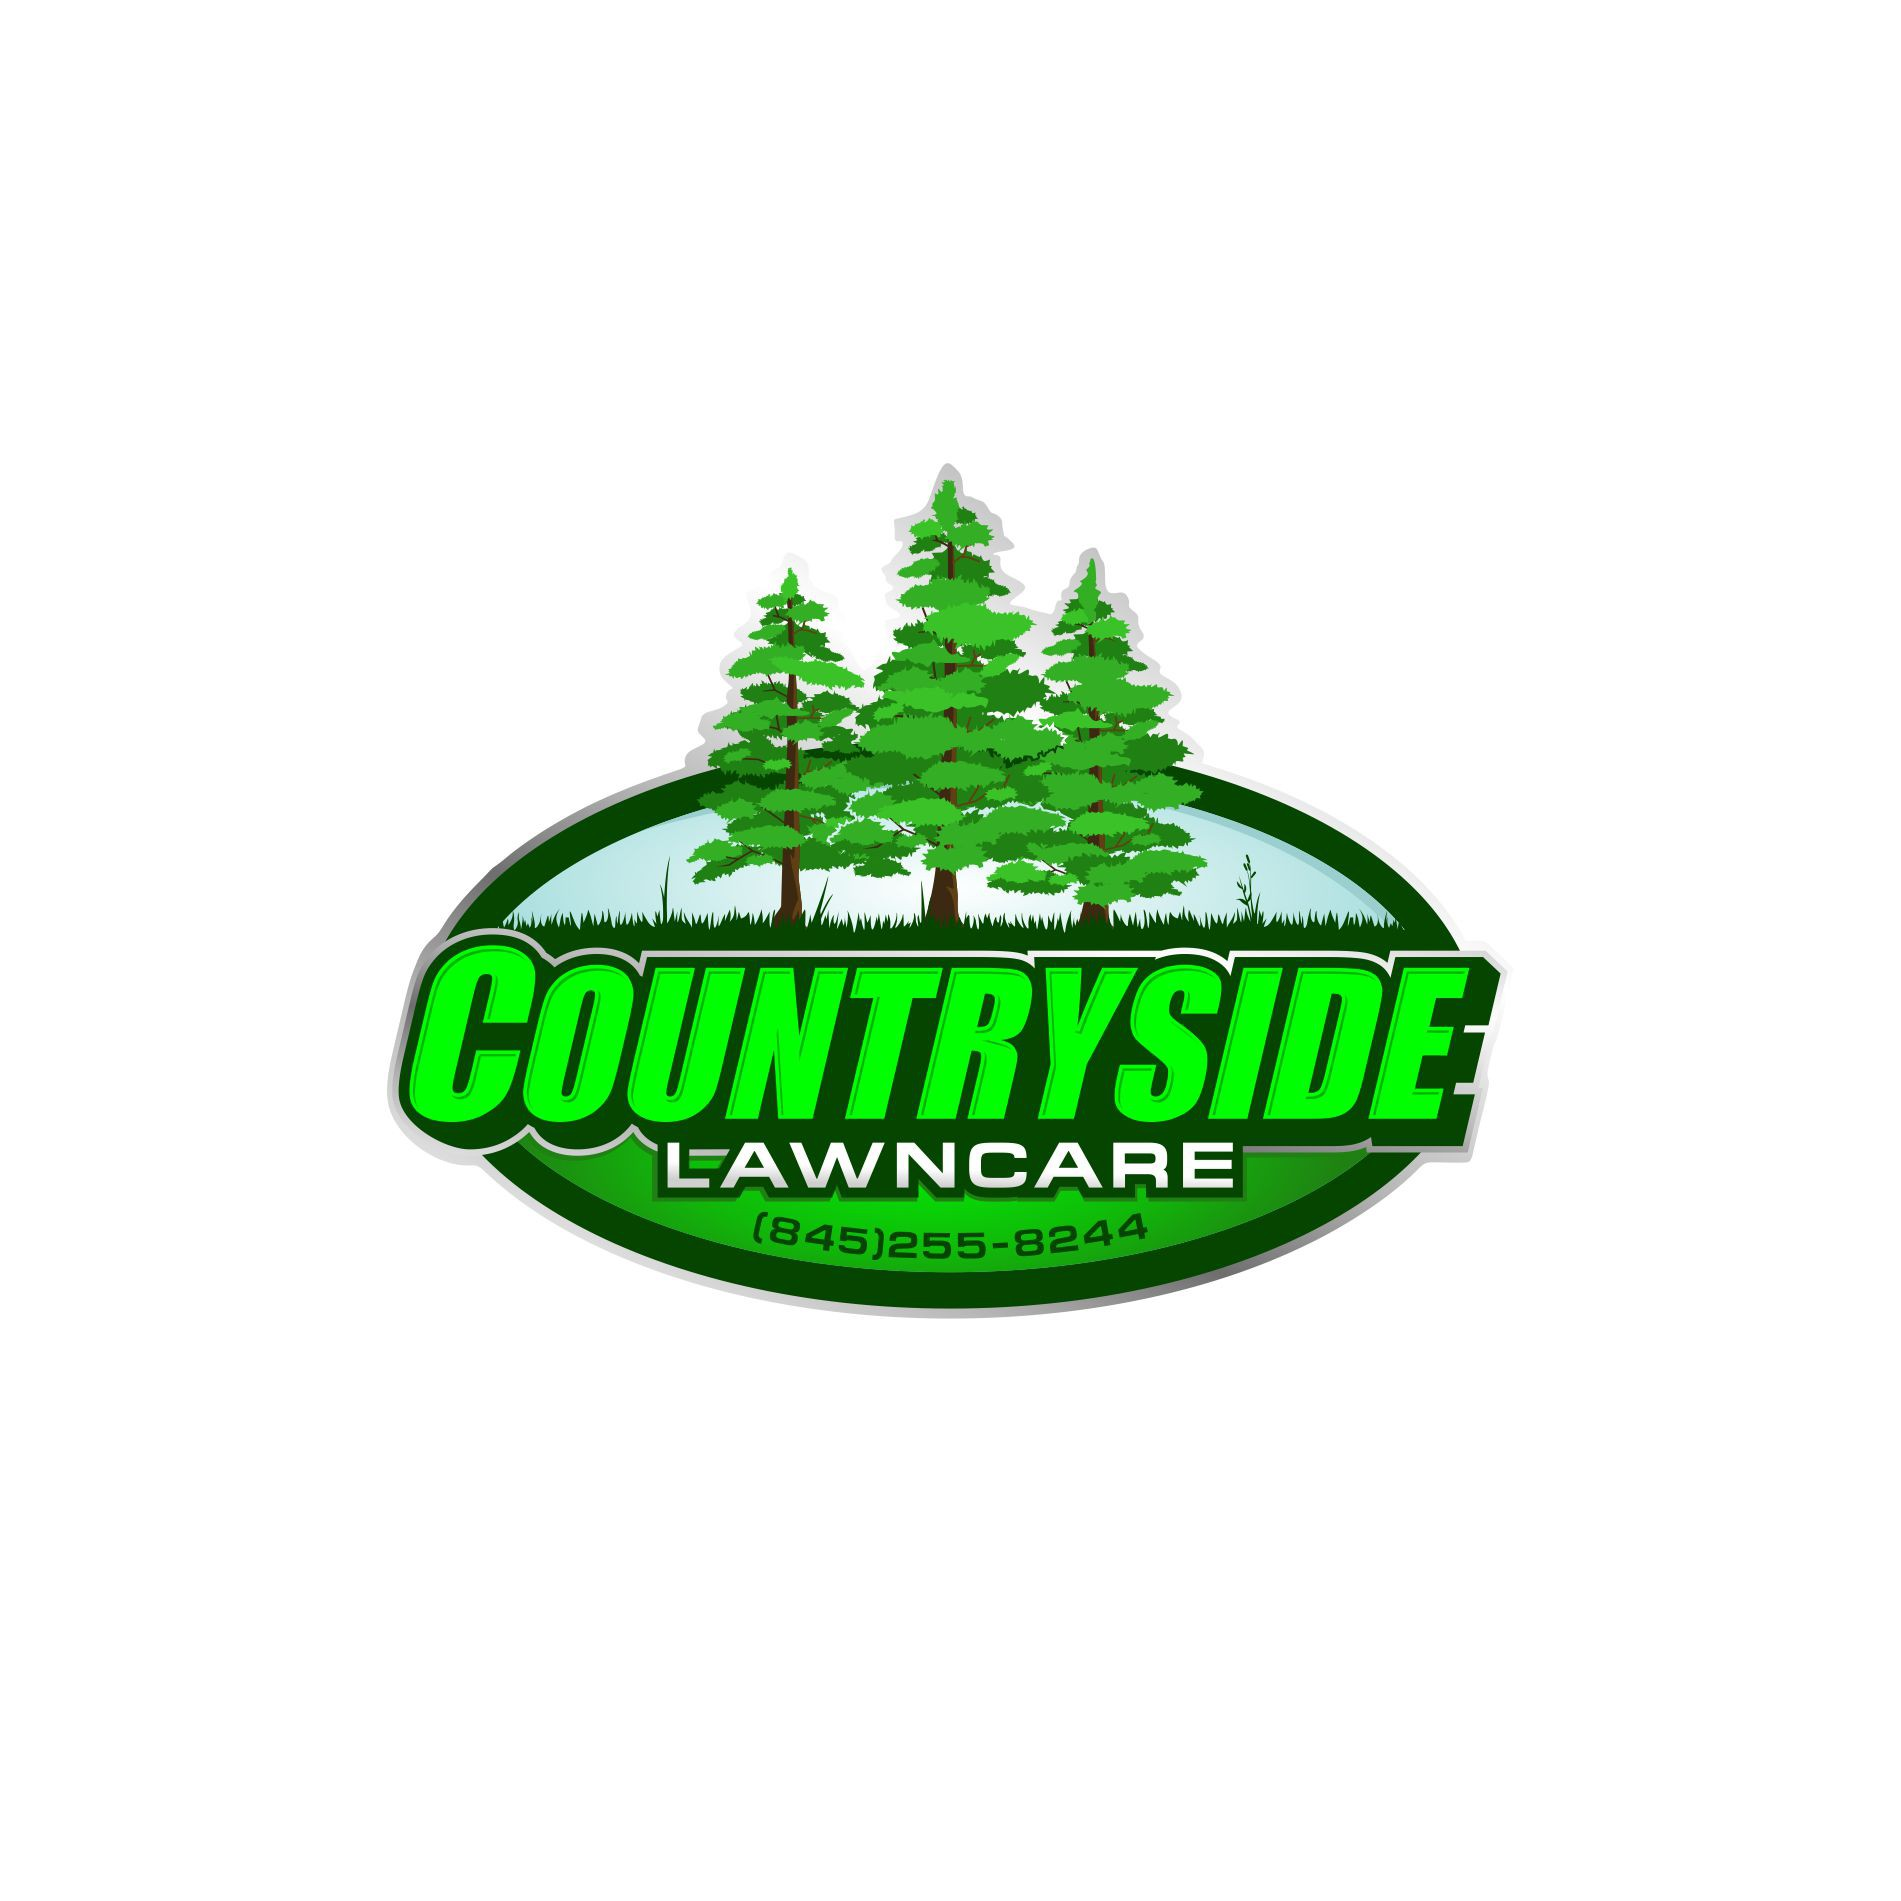 Countryside Lawncare